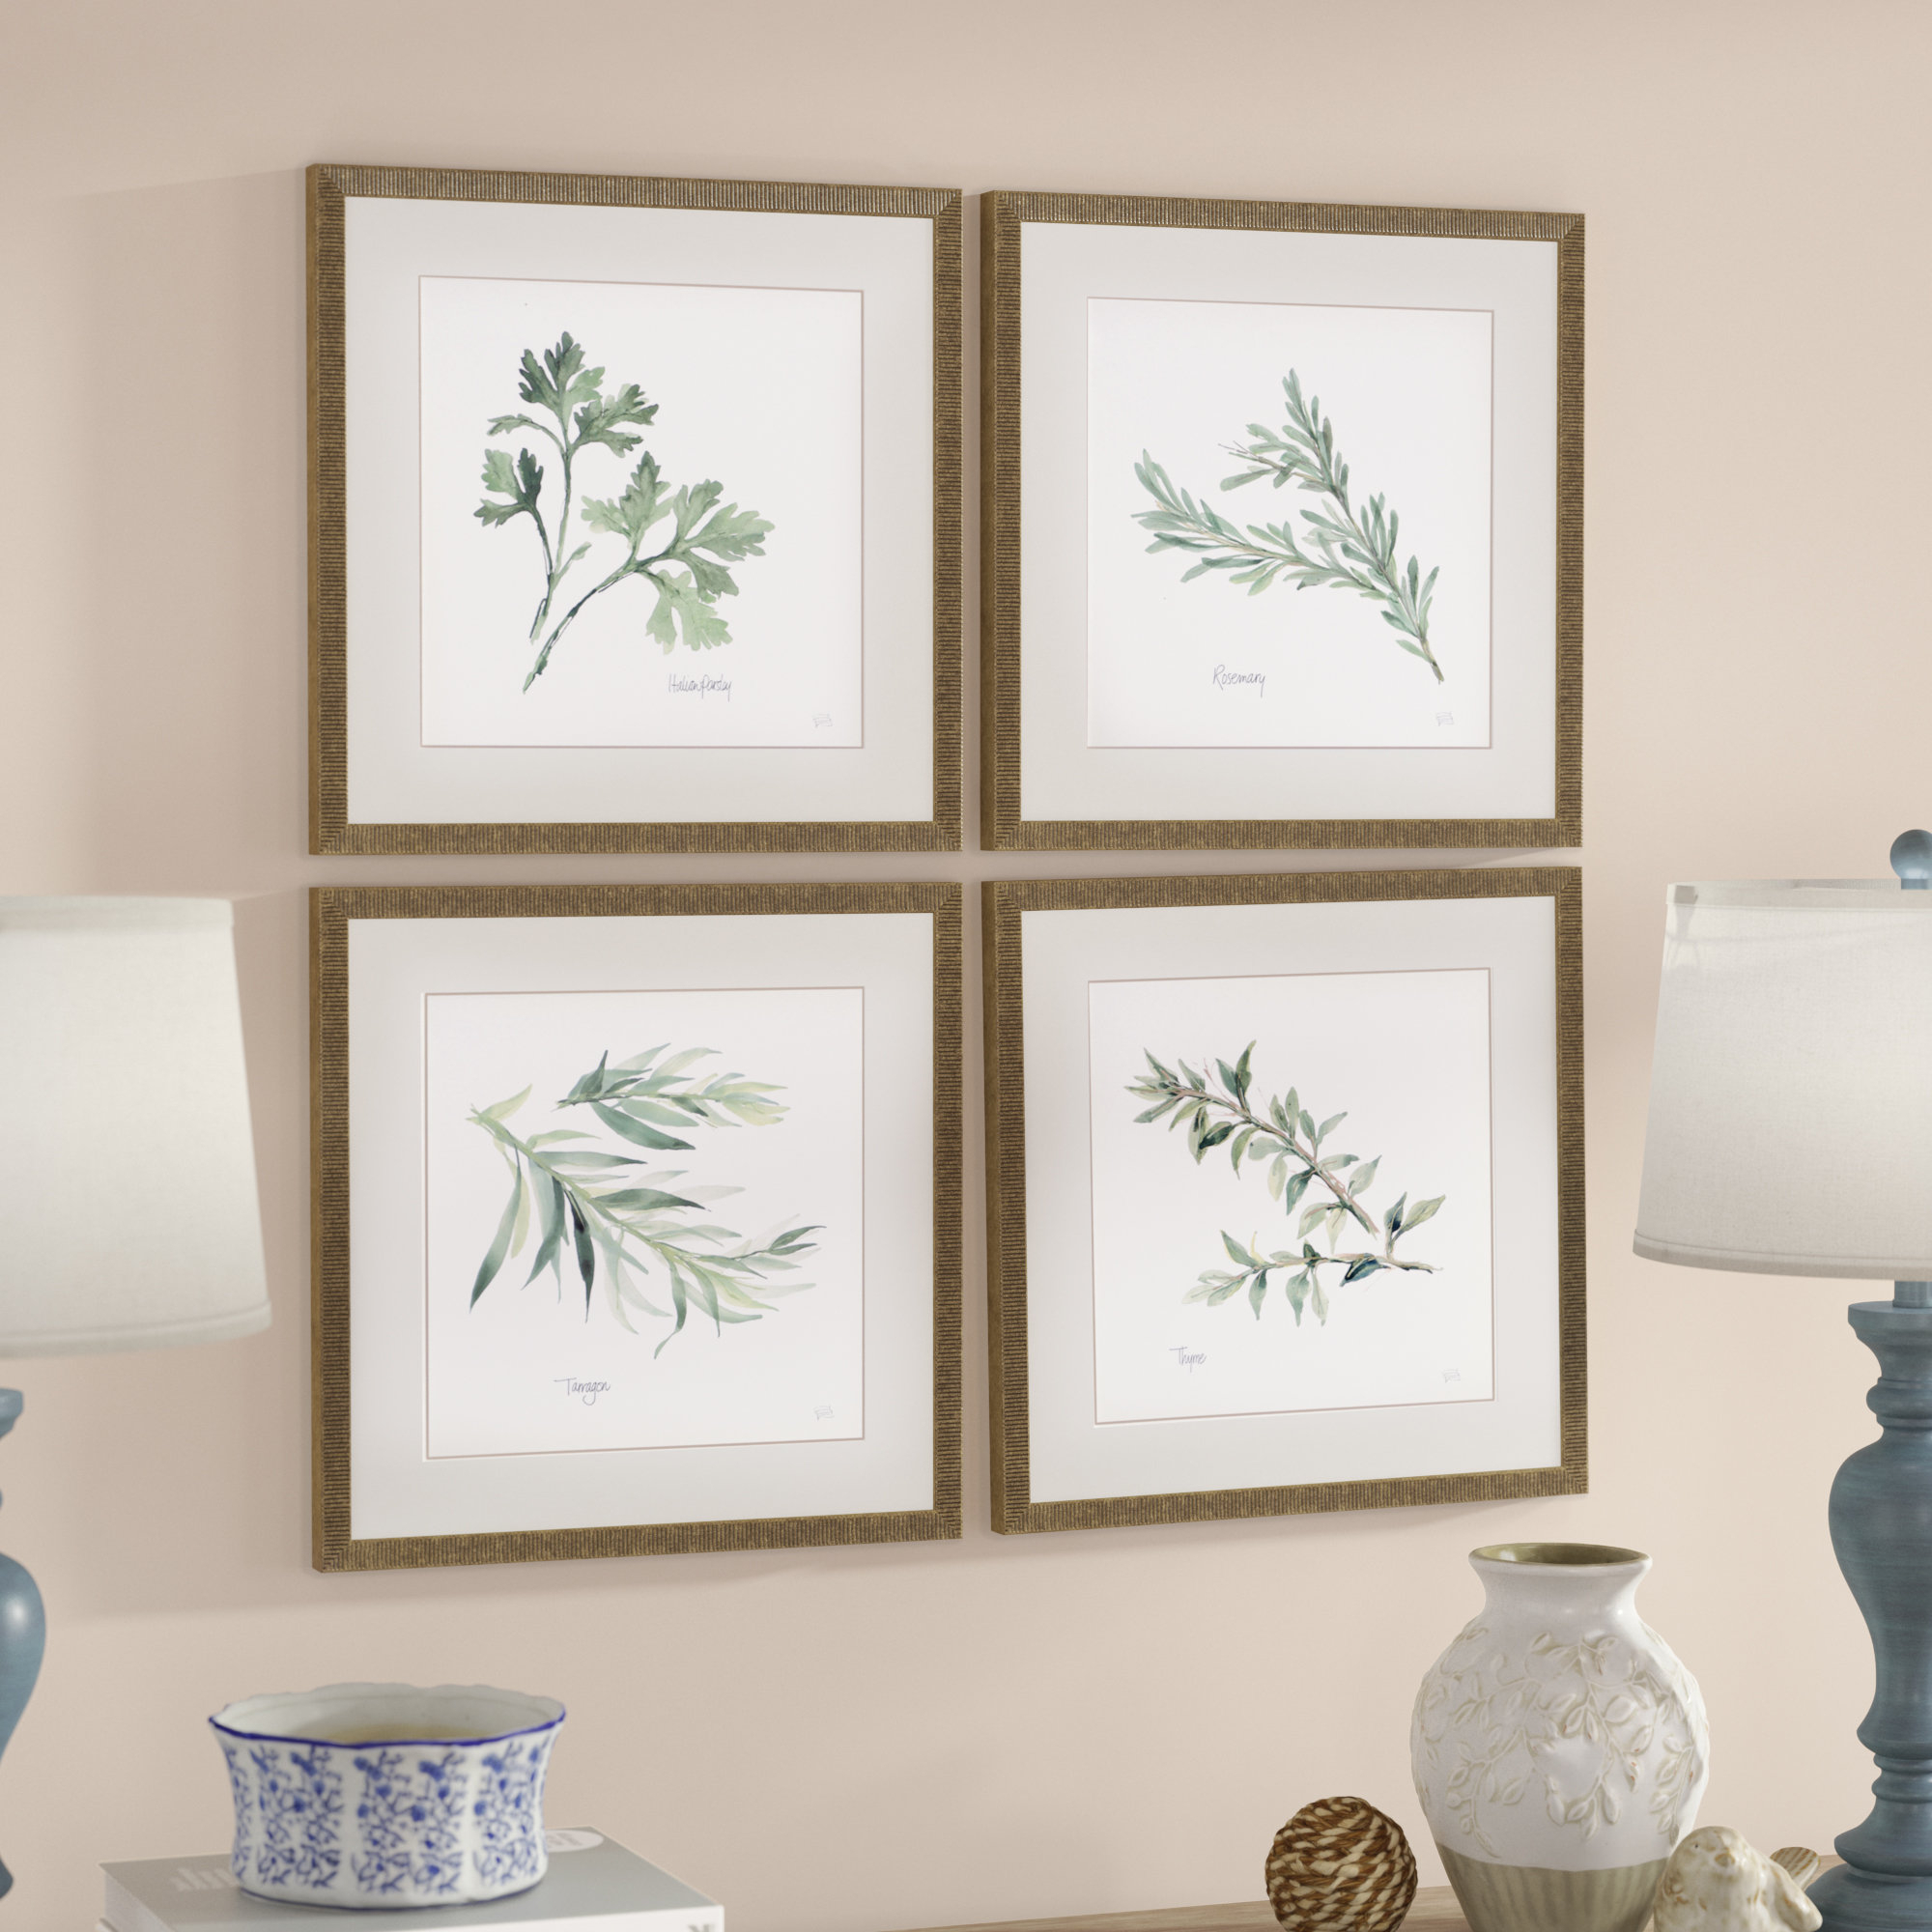 2019 4 Piece Wall Decor Sets By Charlton Home Within Lark Manor 'herbs' 4 Piece Framed Graphic Art Print Set & Reviews (View 15 of 20)